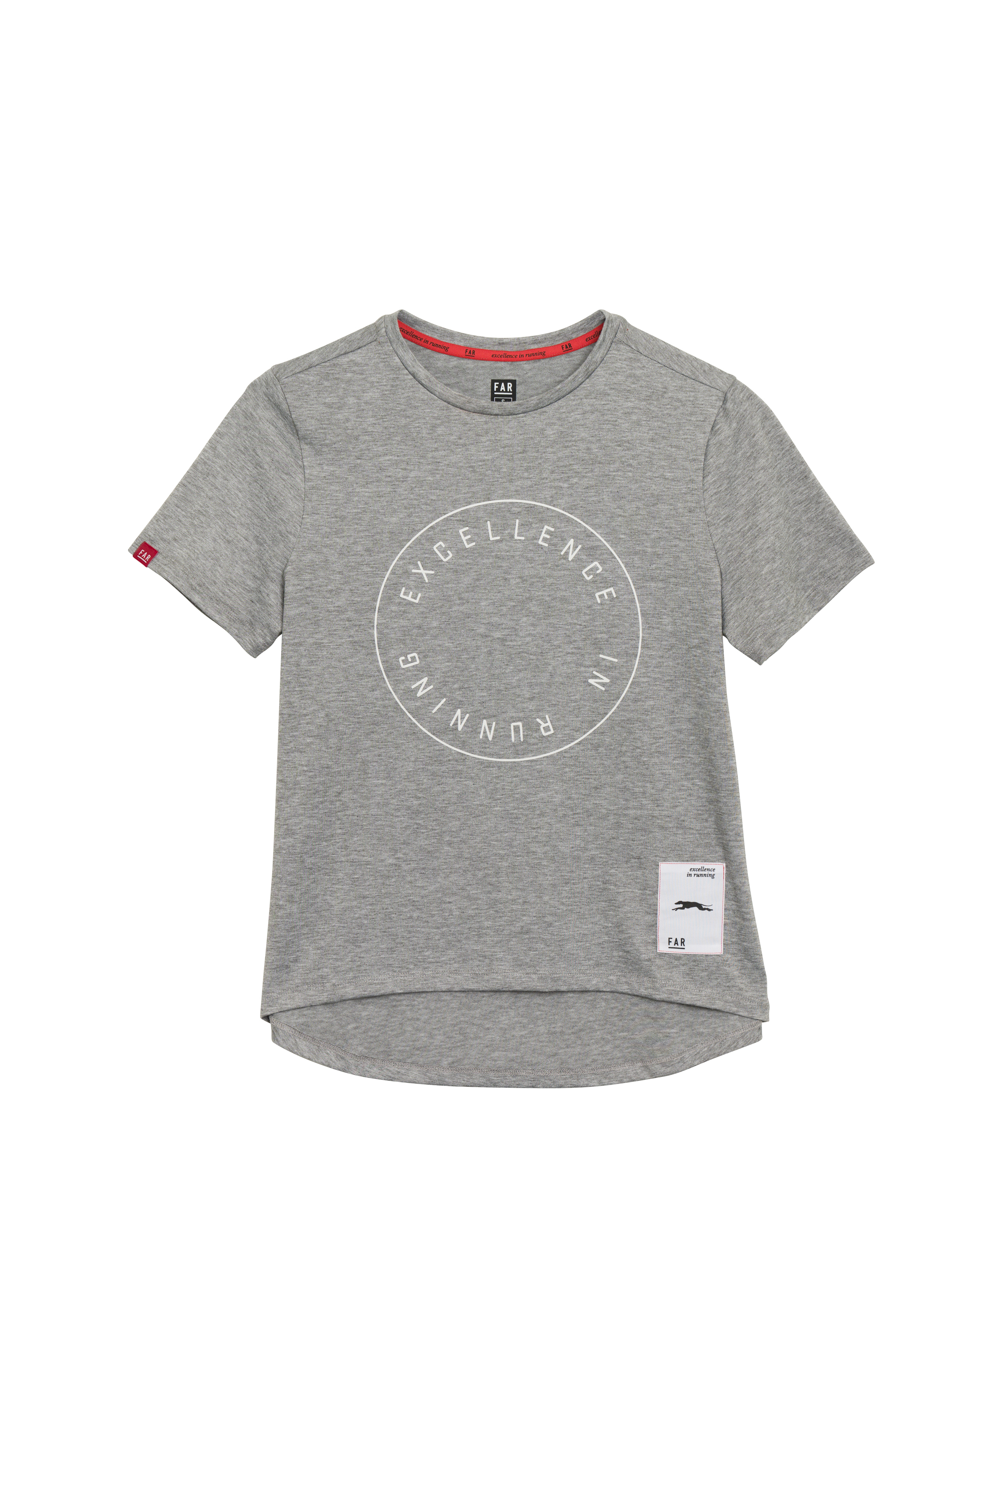 Excellence in Running Street Cotton Tee - Grey